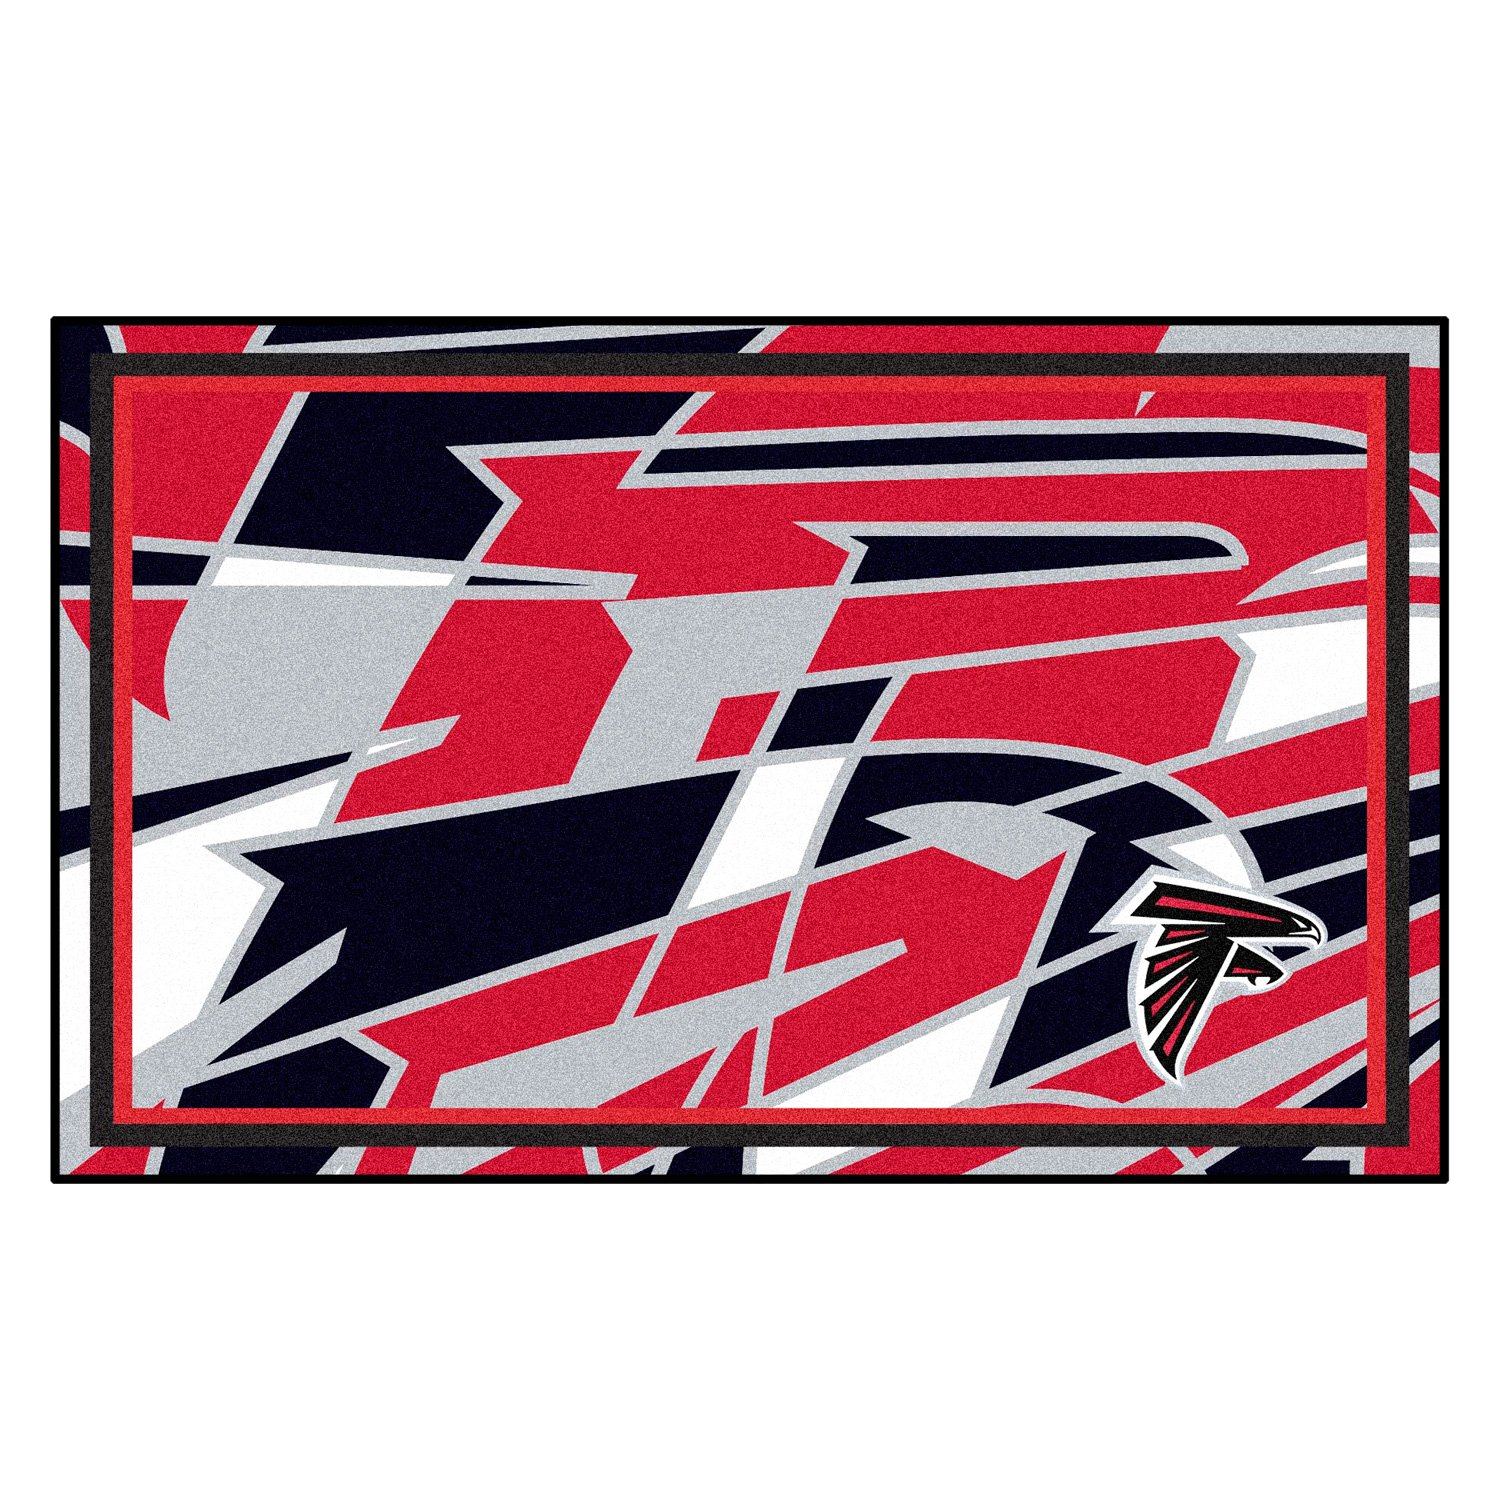 Fanmats 23202 X Fit Nfl Atlanta Falcons 4 0 X 6 0 Rectangular Carpet Area Rug With Falcon Logo Camperid Com